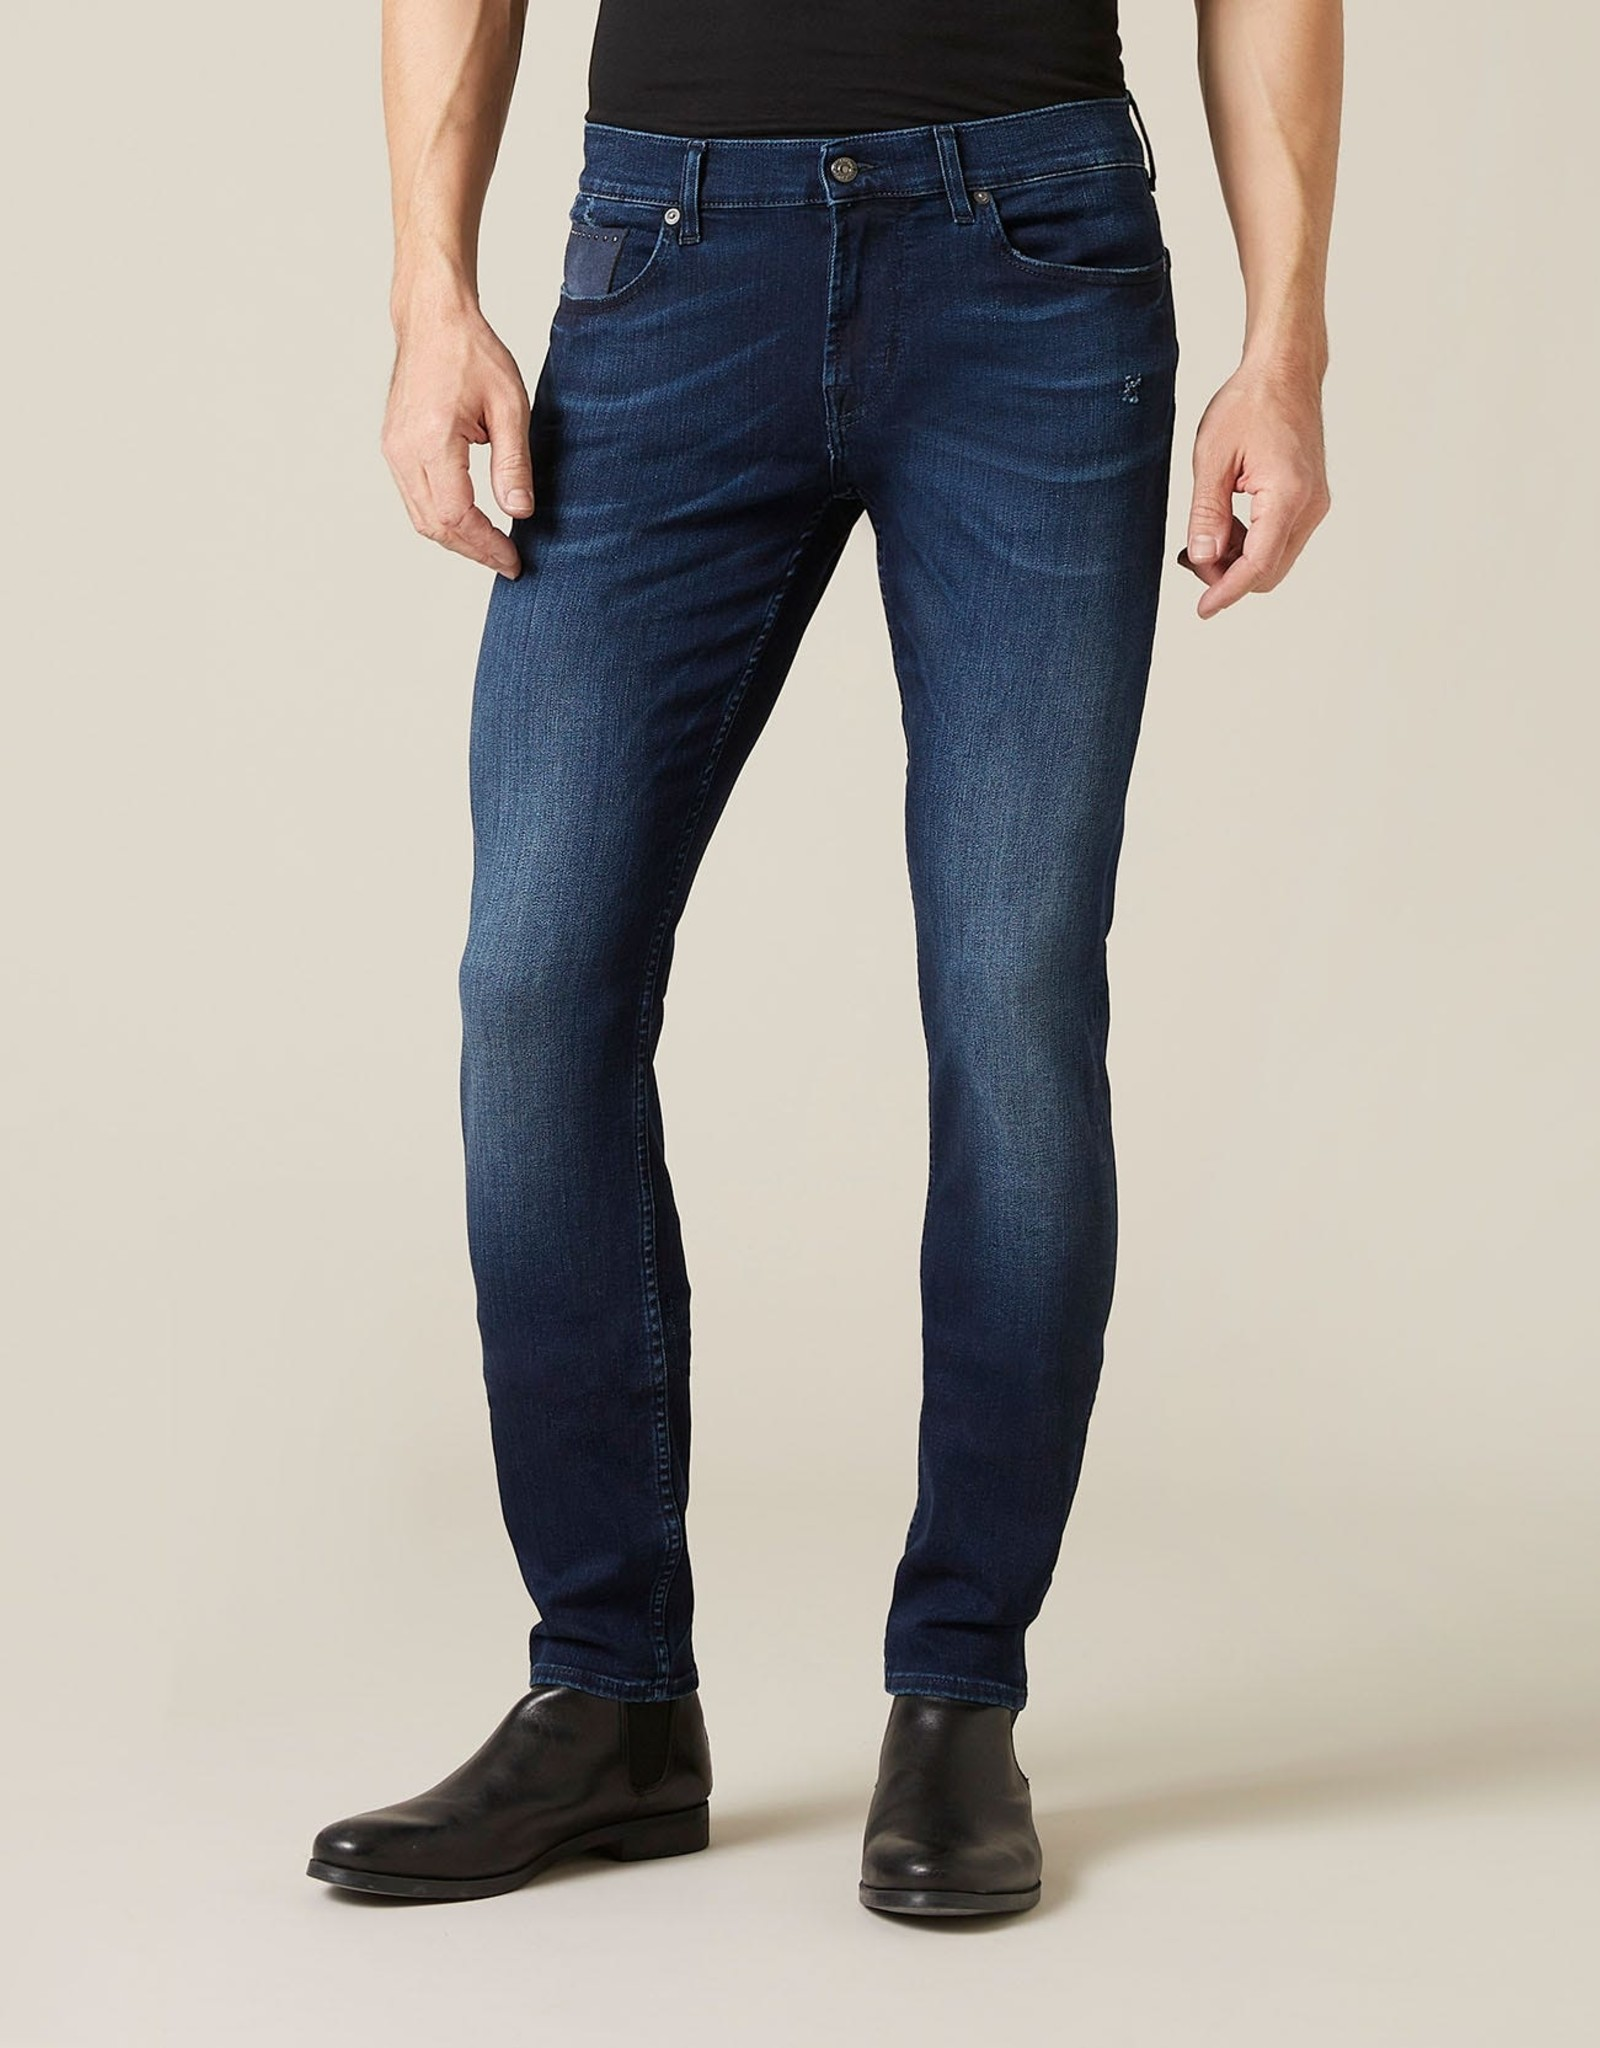 7 FAM Jeans Ronnie Special Edition Breath Dark Blue